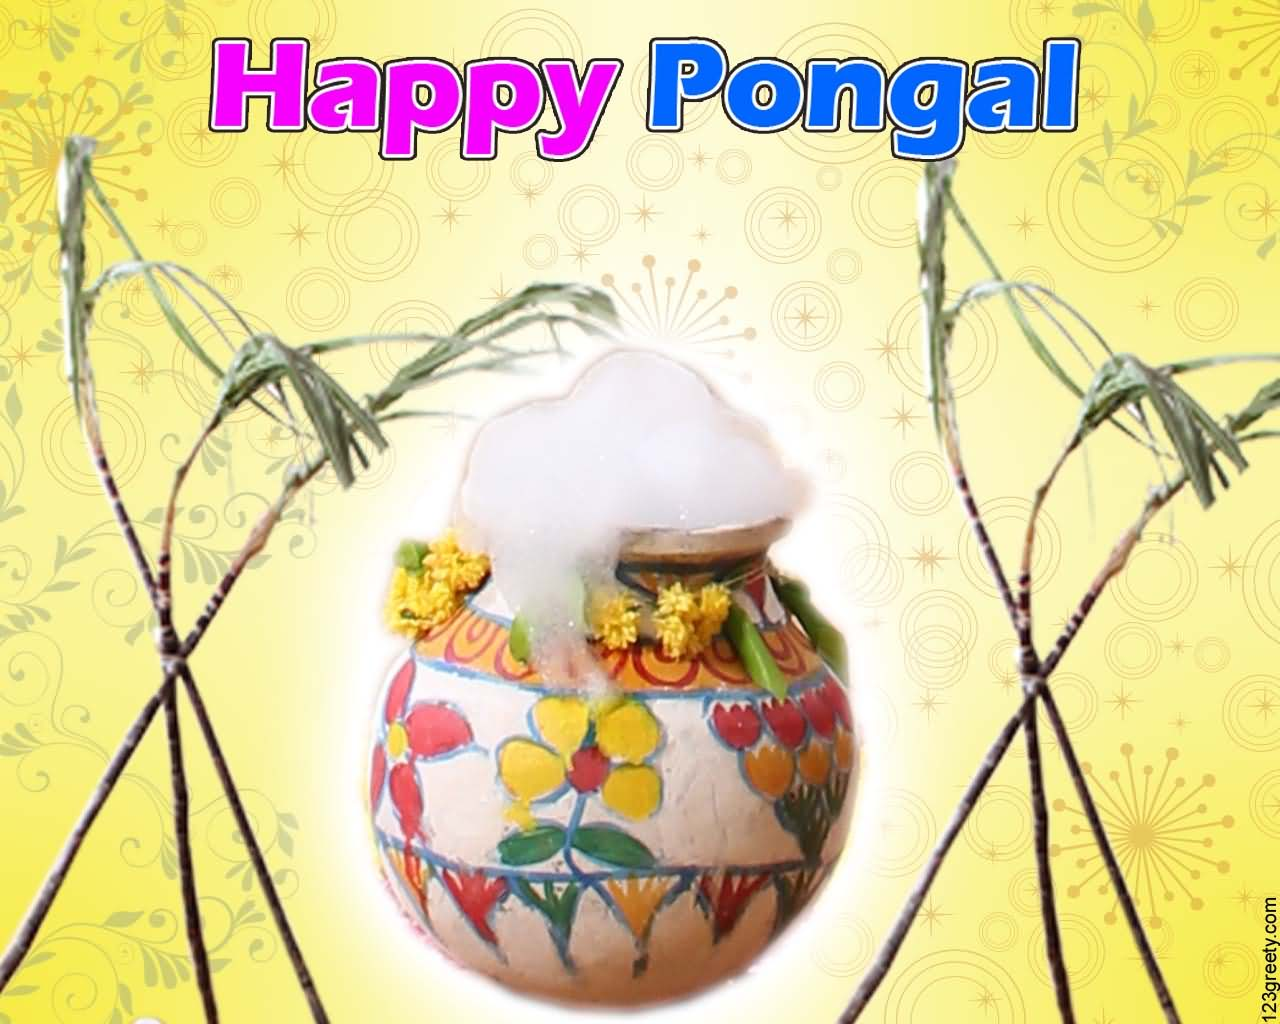 pongal festival essay for kids Free essays on pongal festival search pongal festival pongal festival pongal is a four-days-long harvest festival celebrated in tamil nadu as kids.